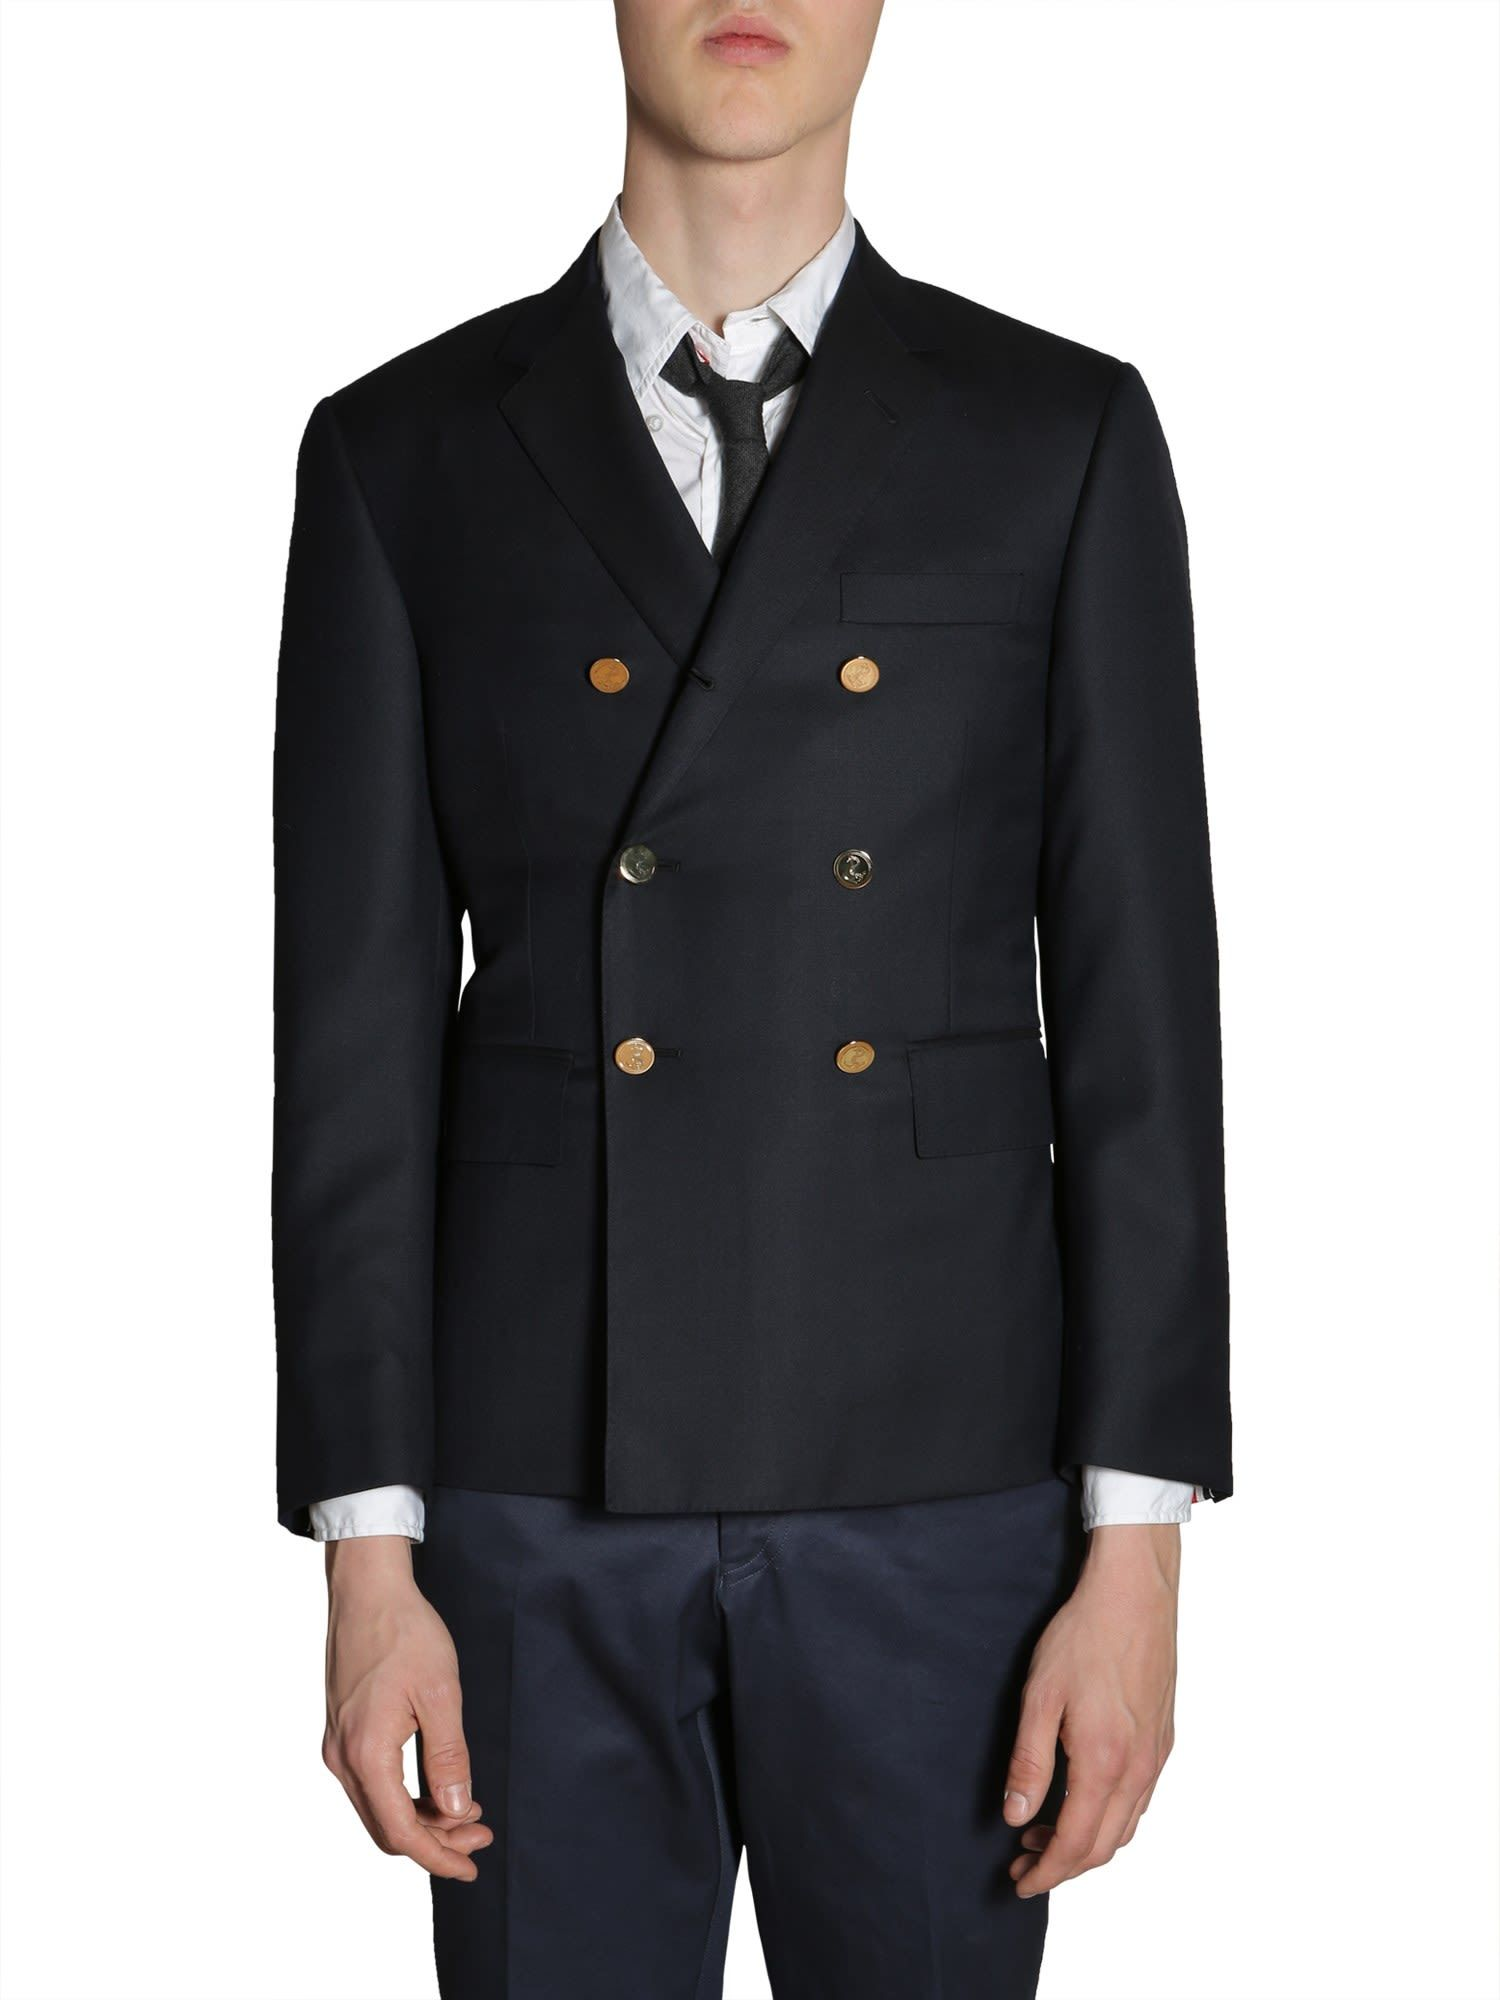 860a84d4fbc3 THOM BROWNE DOUBLE BREASTED JACKET.  thombrowne  cloth